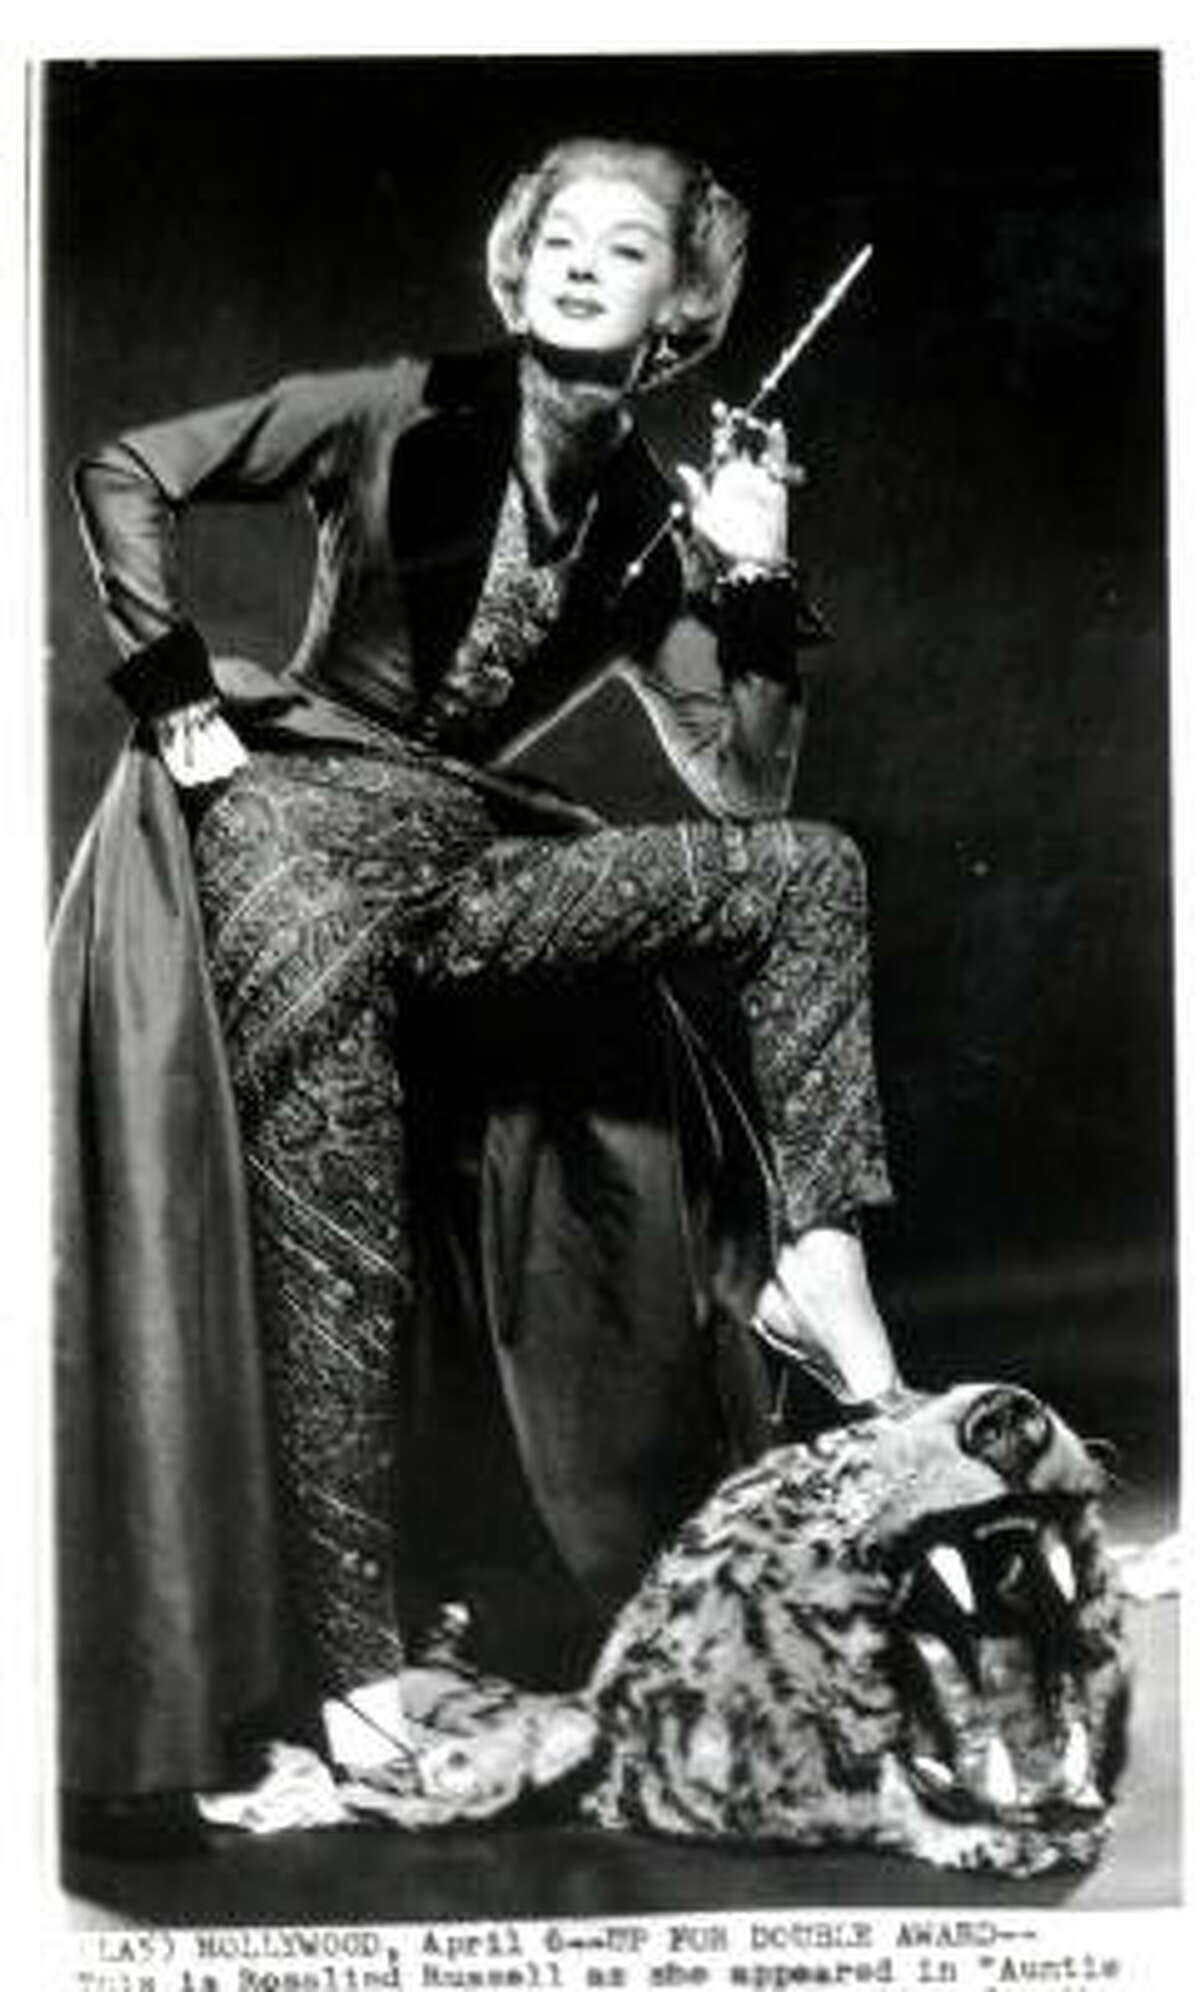 For millions, the character Auntie Mame always will be synonymous with incomparable Rosalind Russell, who originated the role on Broadway and re-created her celebrated portrayal in the hugely popular 1958 film version.